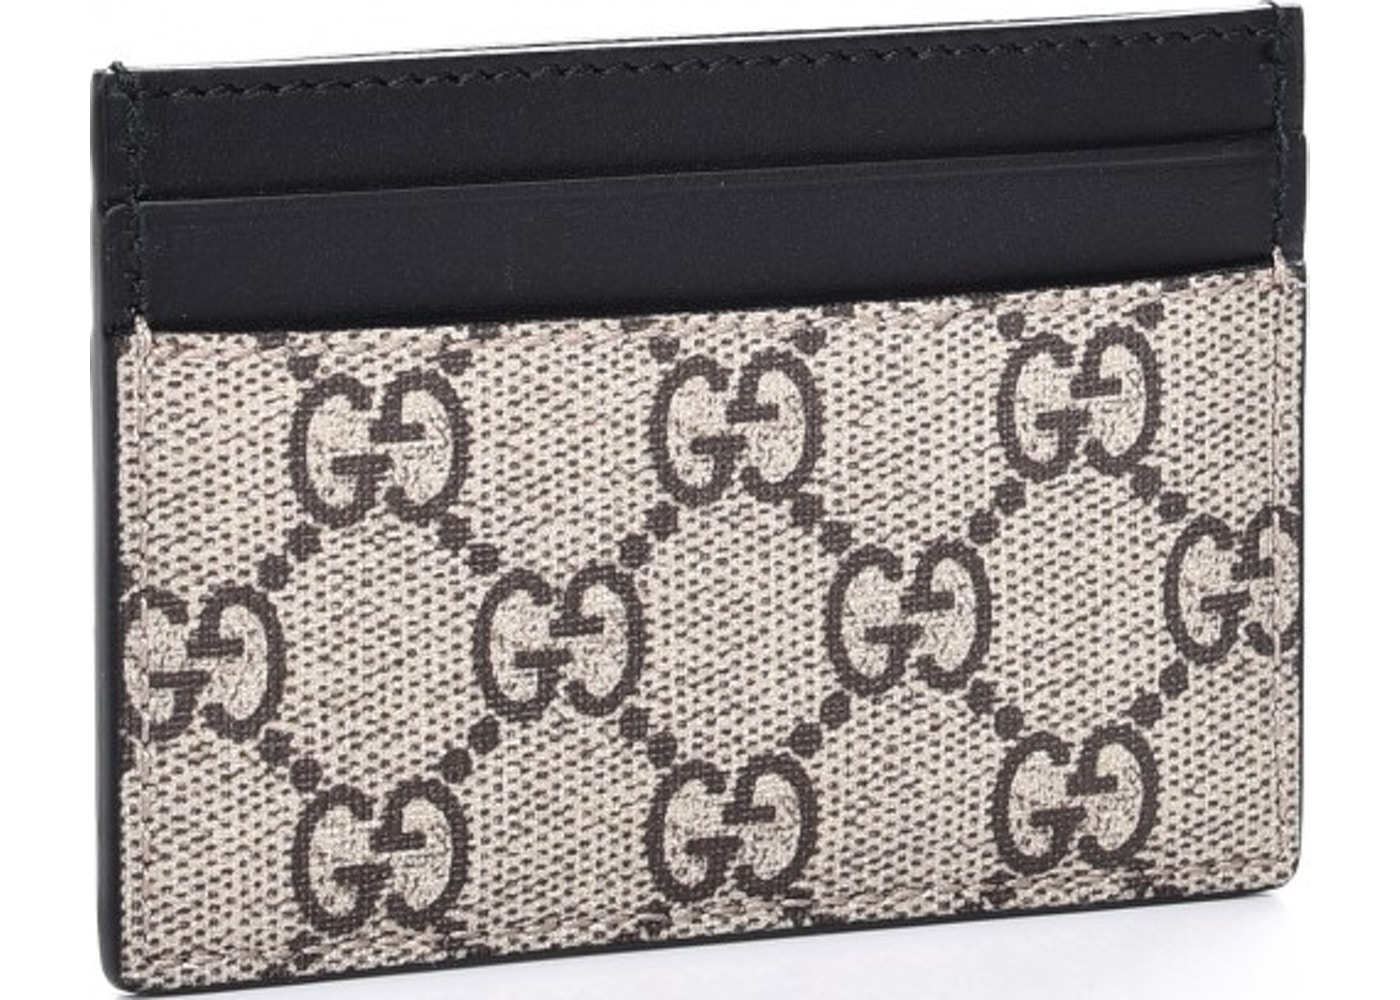 Sell. or Ask. View All Bids. Gucci Card Case GG Supreme Bee Print Black  Beige c8295638a2f